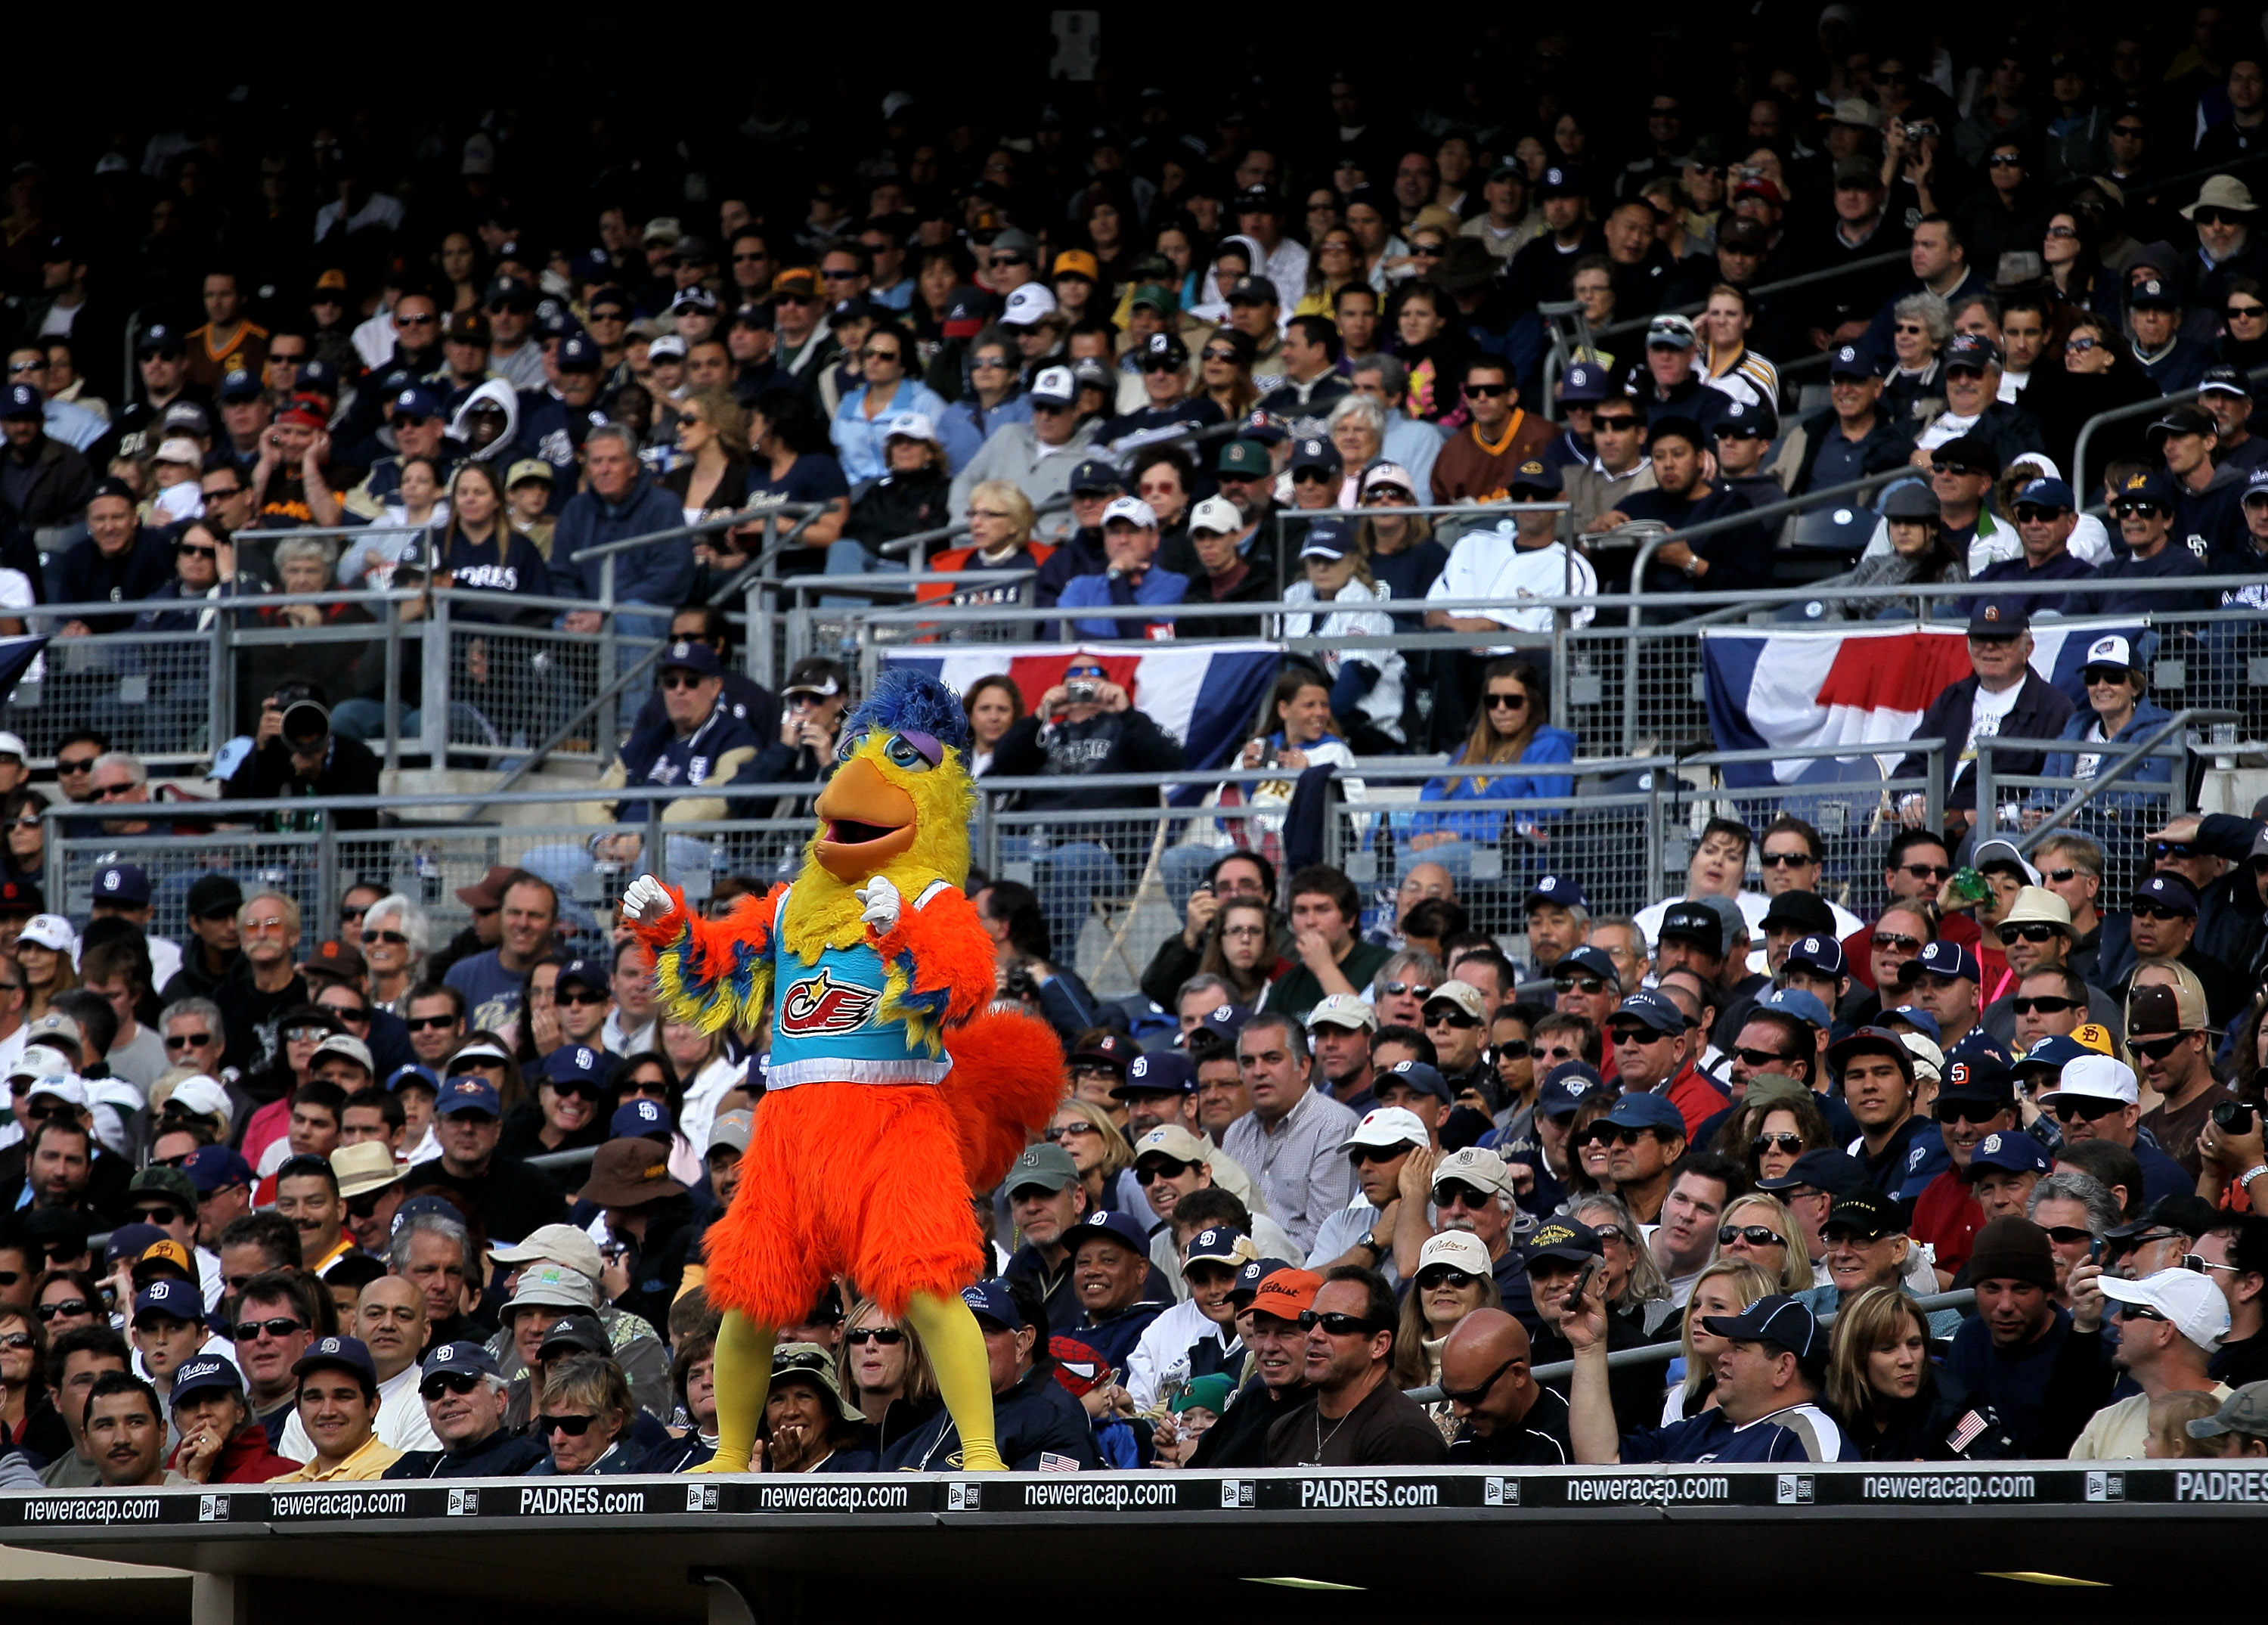 SAN DIEGO - APRIL 12:   The San Diego Chicken performs during the game between the Atlanta Braves and the San Diego Padres on April 12, 2010 at Petco Park in San Diego, California.    (Photo by Stephen Dunn/Getty Images)